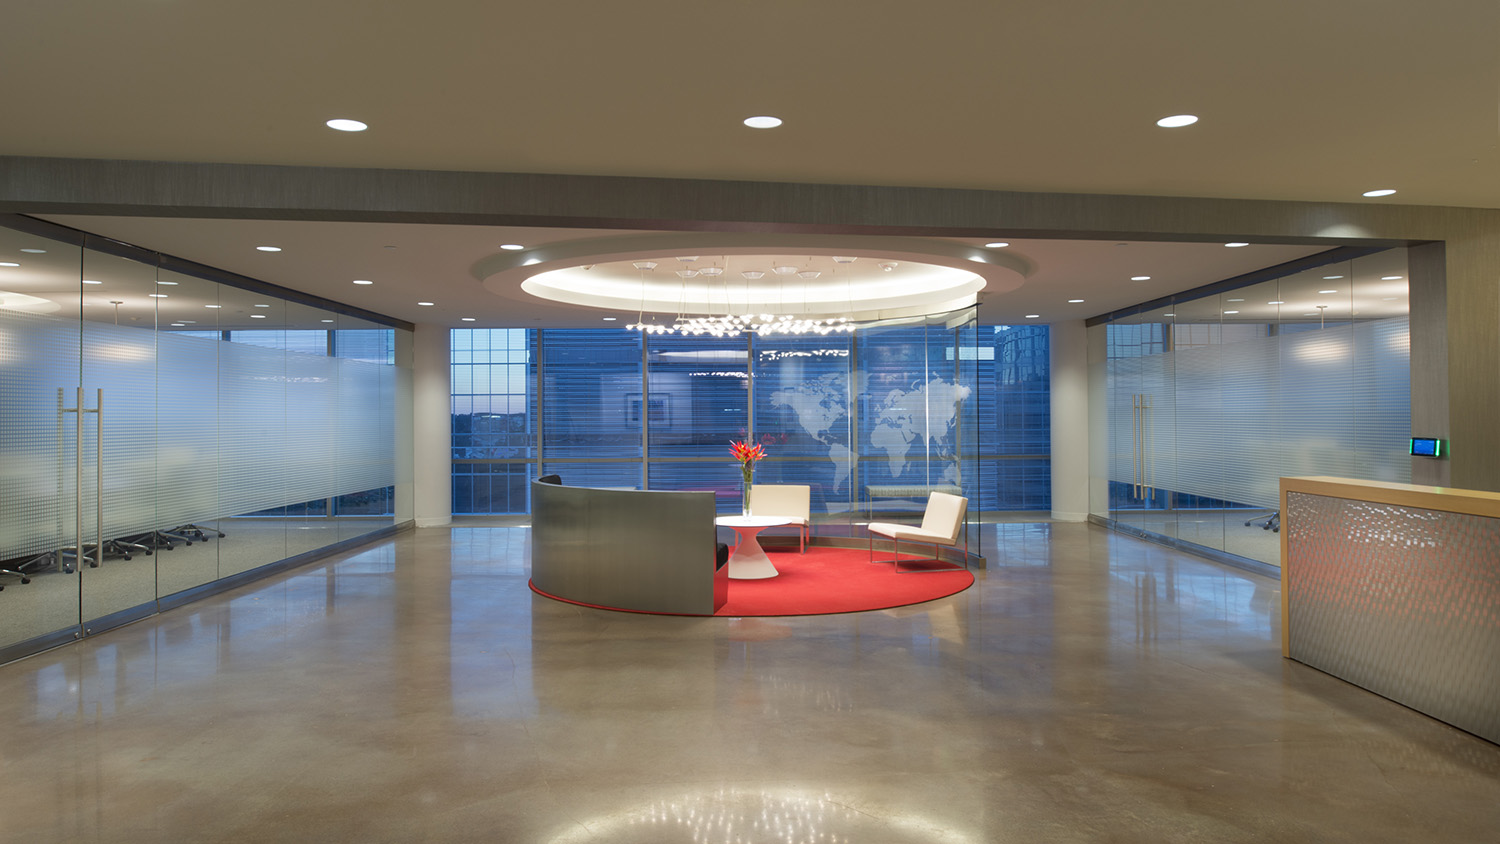 Corporate Interior Design Houston Energy Alloys Entry Lobby Concrete Floors Red Circular Seating Area